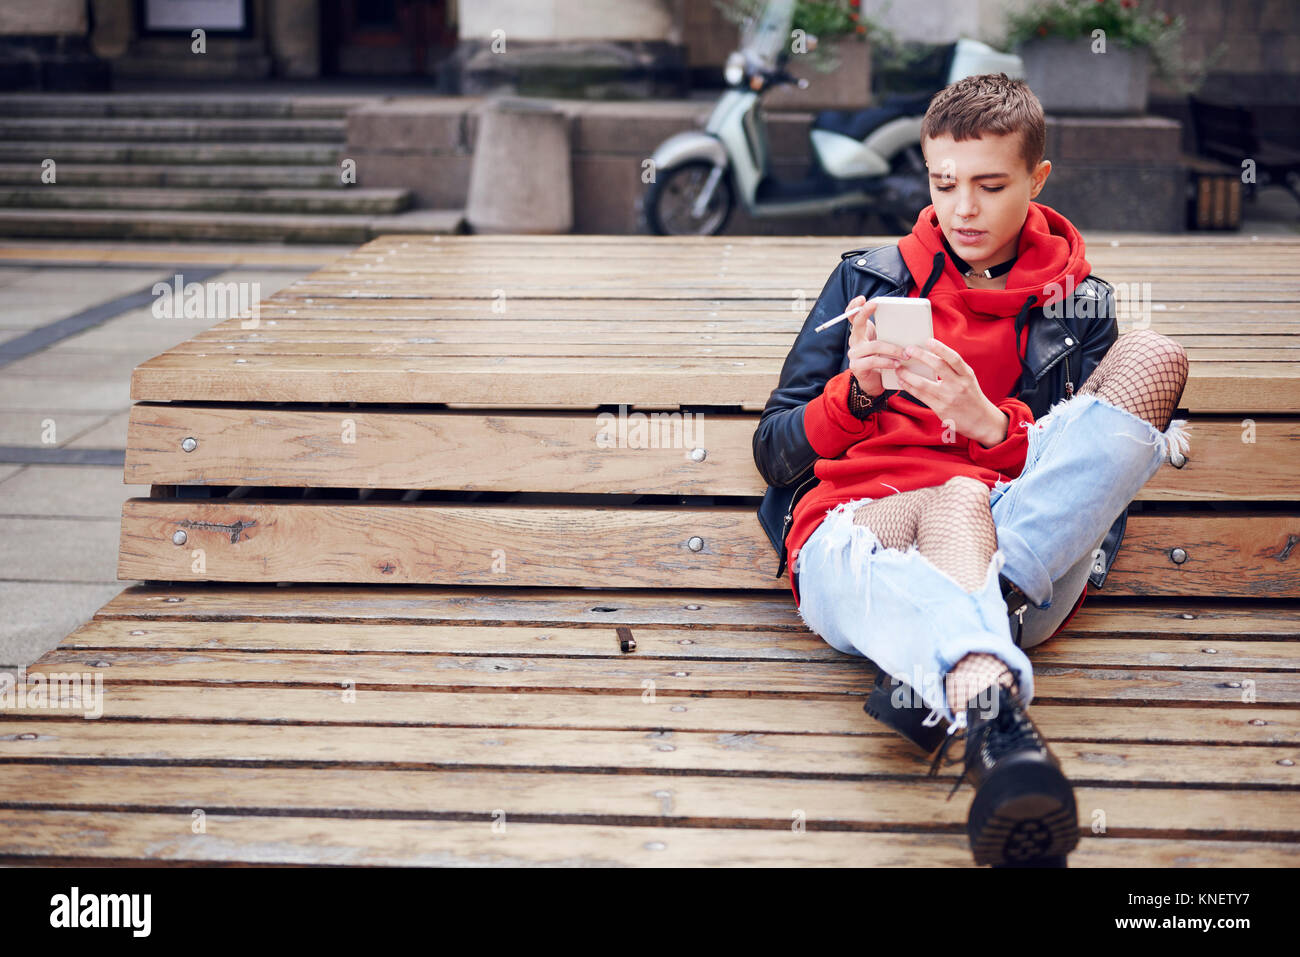 Cool young woman with short hair looking at smartphone and smoking cigarette on city bench - Stock Image